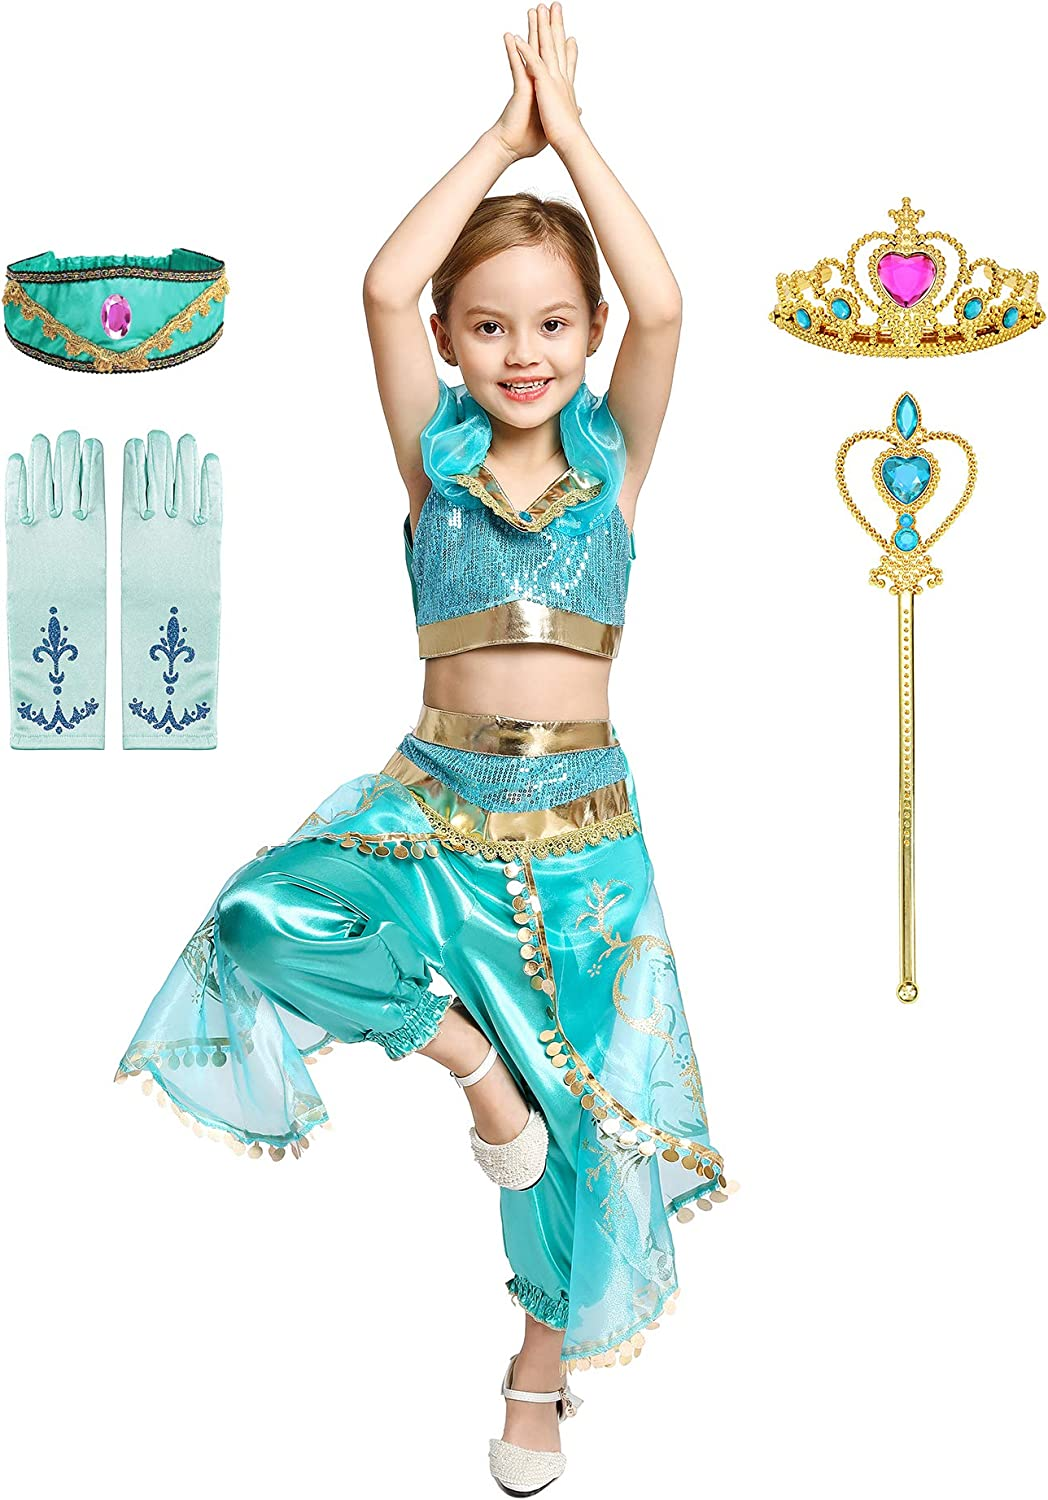 Little Girls Princess Costume Gorgeous Dress Queen High quality new Fancy Up Sales for sale Cosp